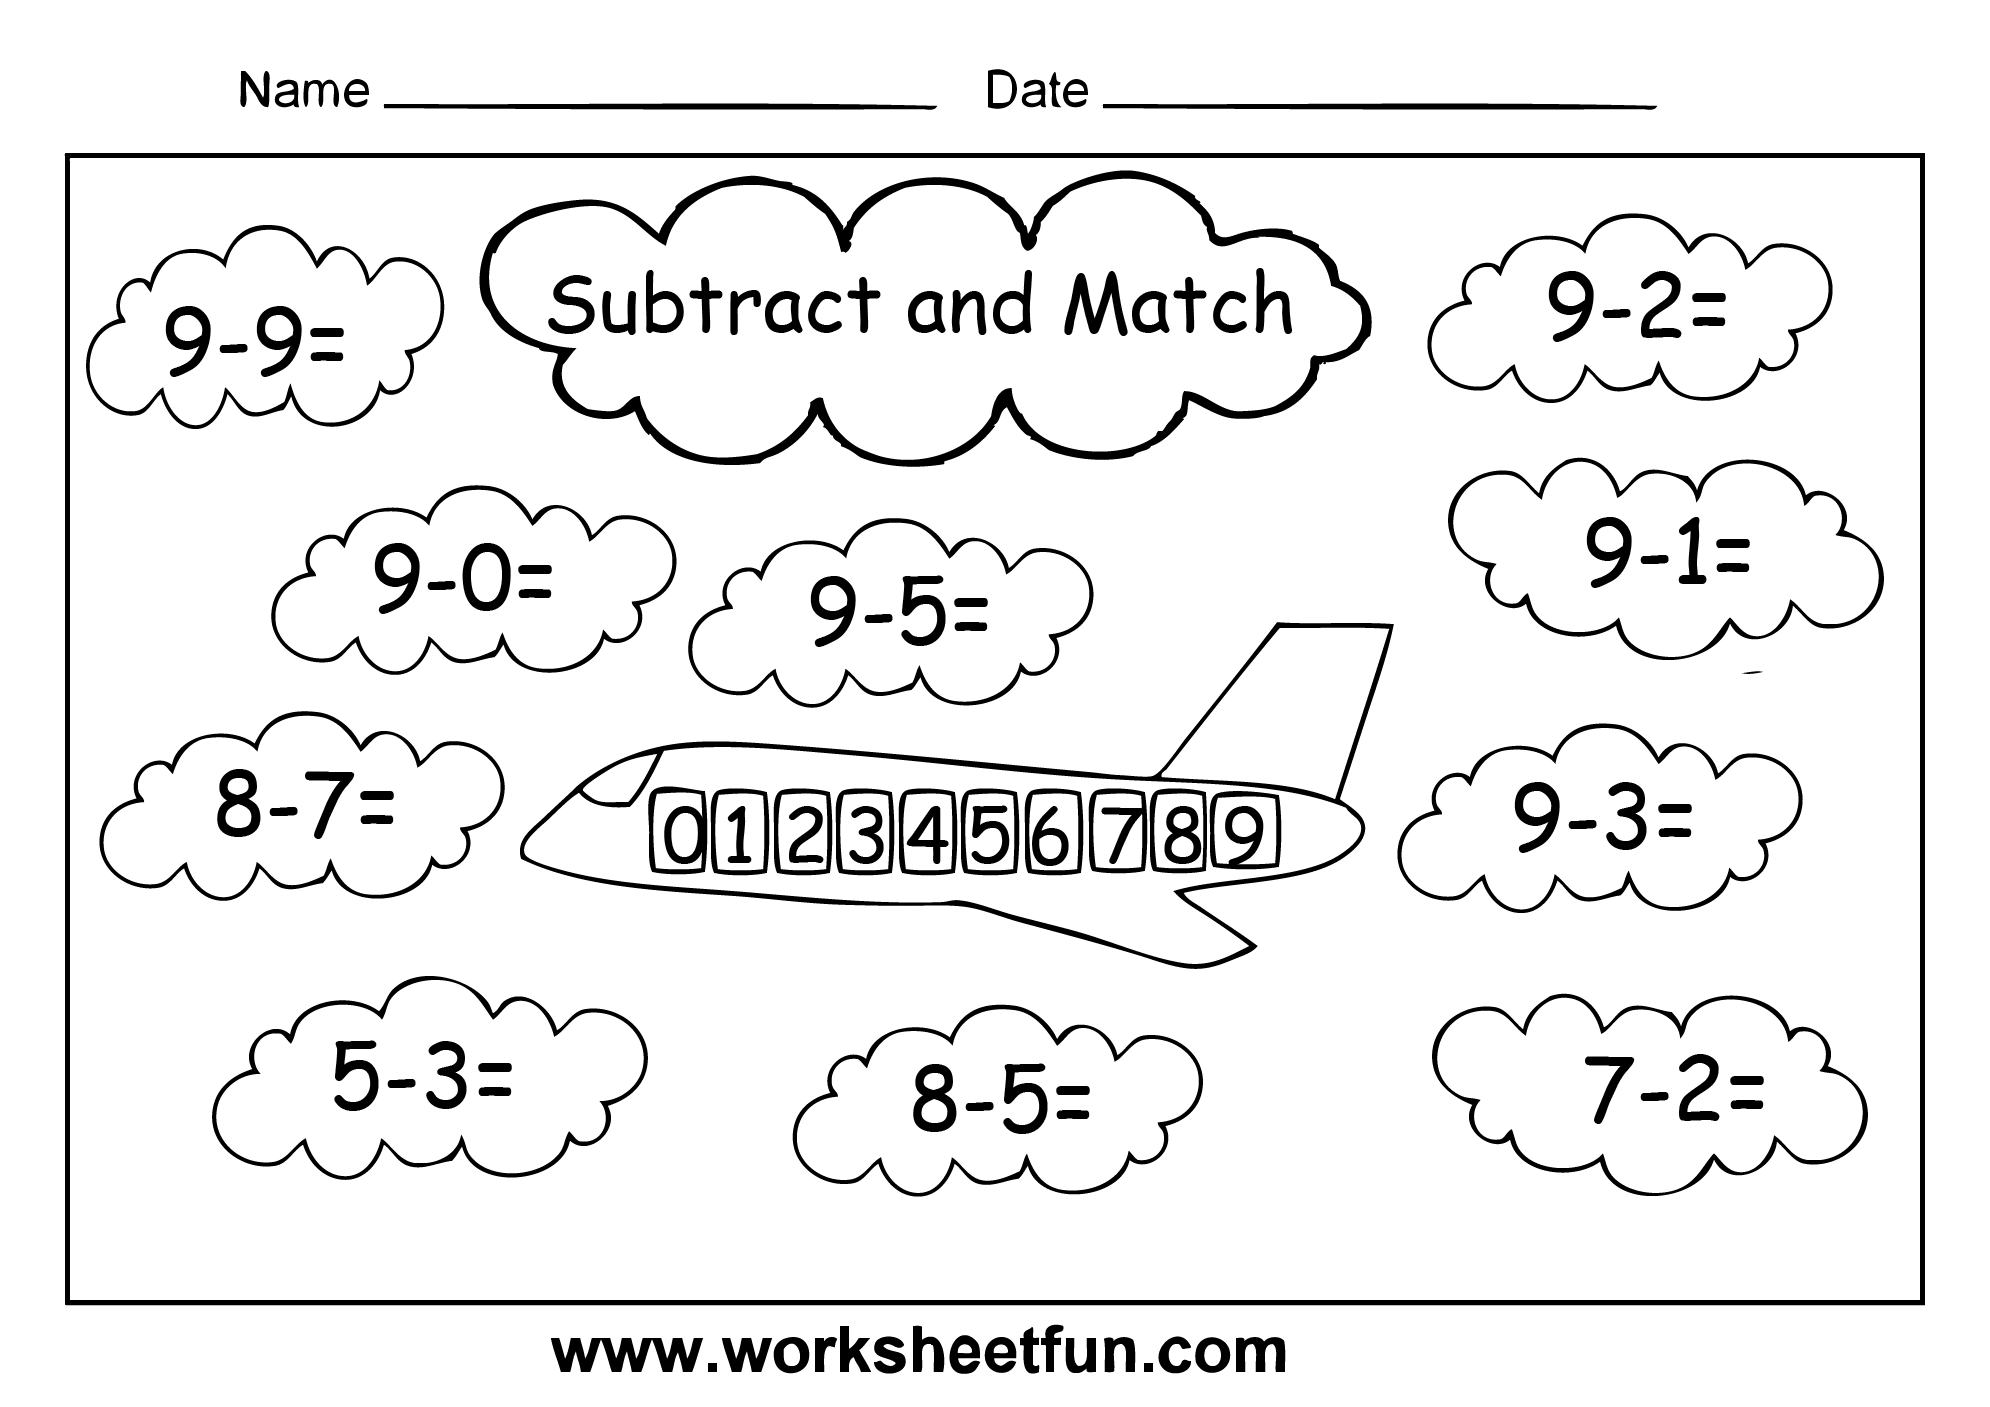 math worksheet : 1000 images about worksheets on pinterest  first grade math  : Printable Worksheets For Grade 1 Maths